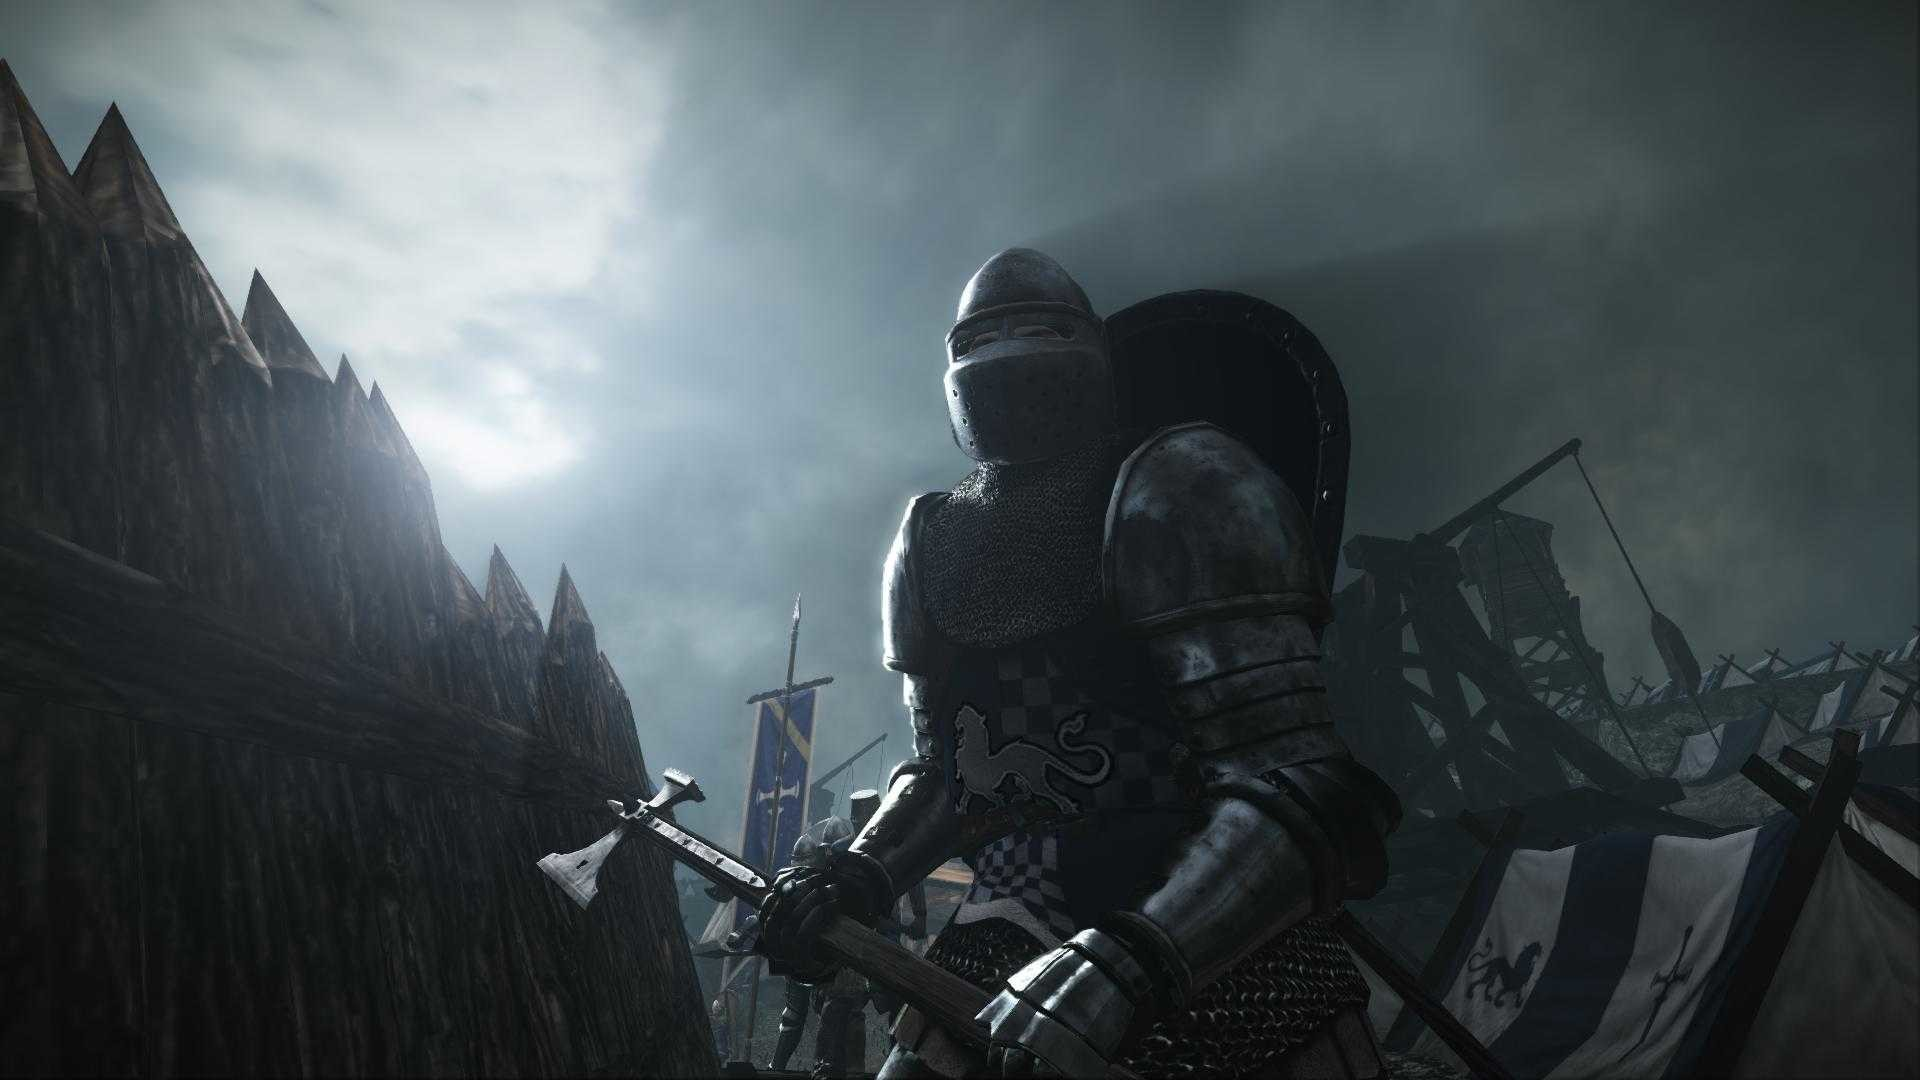 Chivalry: Medieval Warfare – JOGOS VICIANTES: Chivalry: Medieval | Images  Wallpapers | Pinterest | Chivalry medieval warfare and Warfare